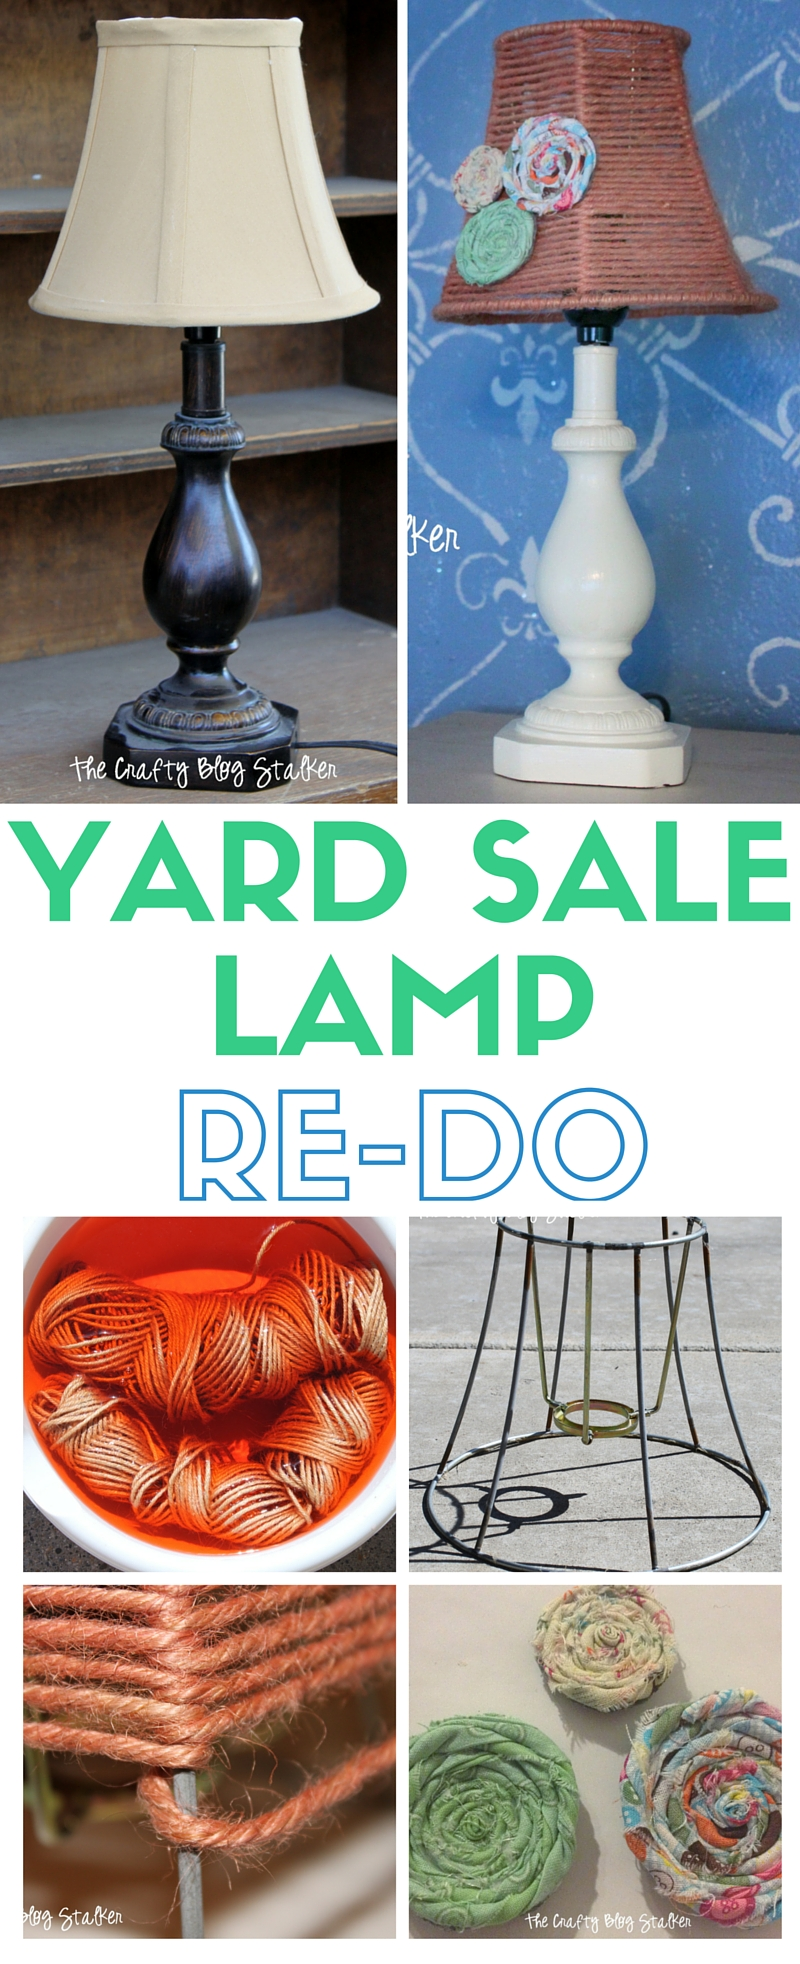 Transform an old yard sale mini accent lamp into a beautiful piece of home decor. A fun and simple re-do project that will you can proudly display.